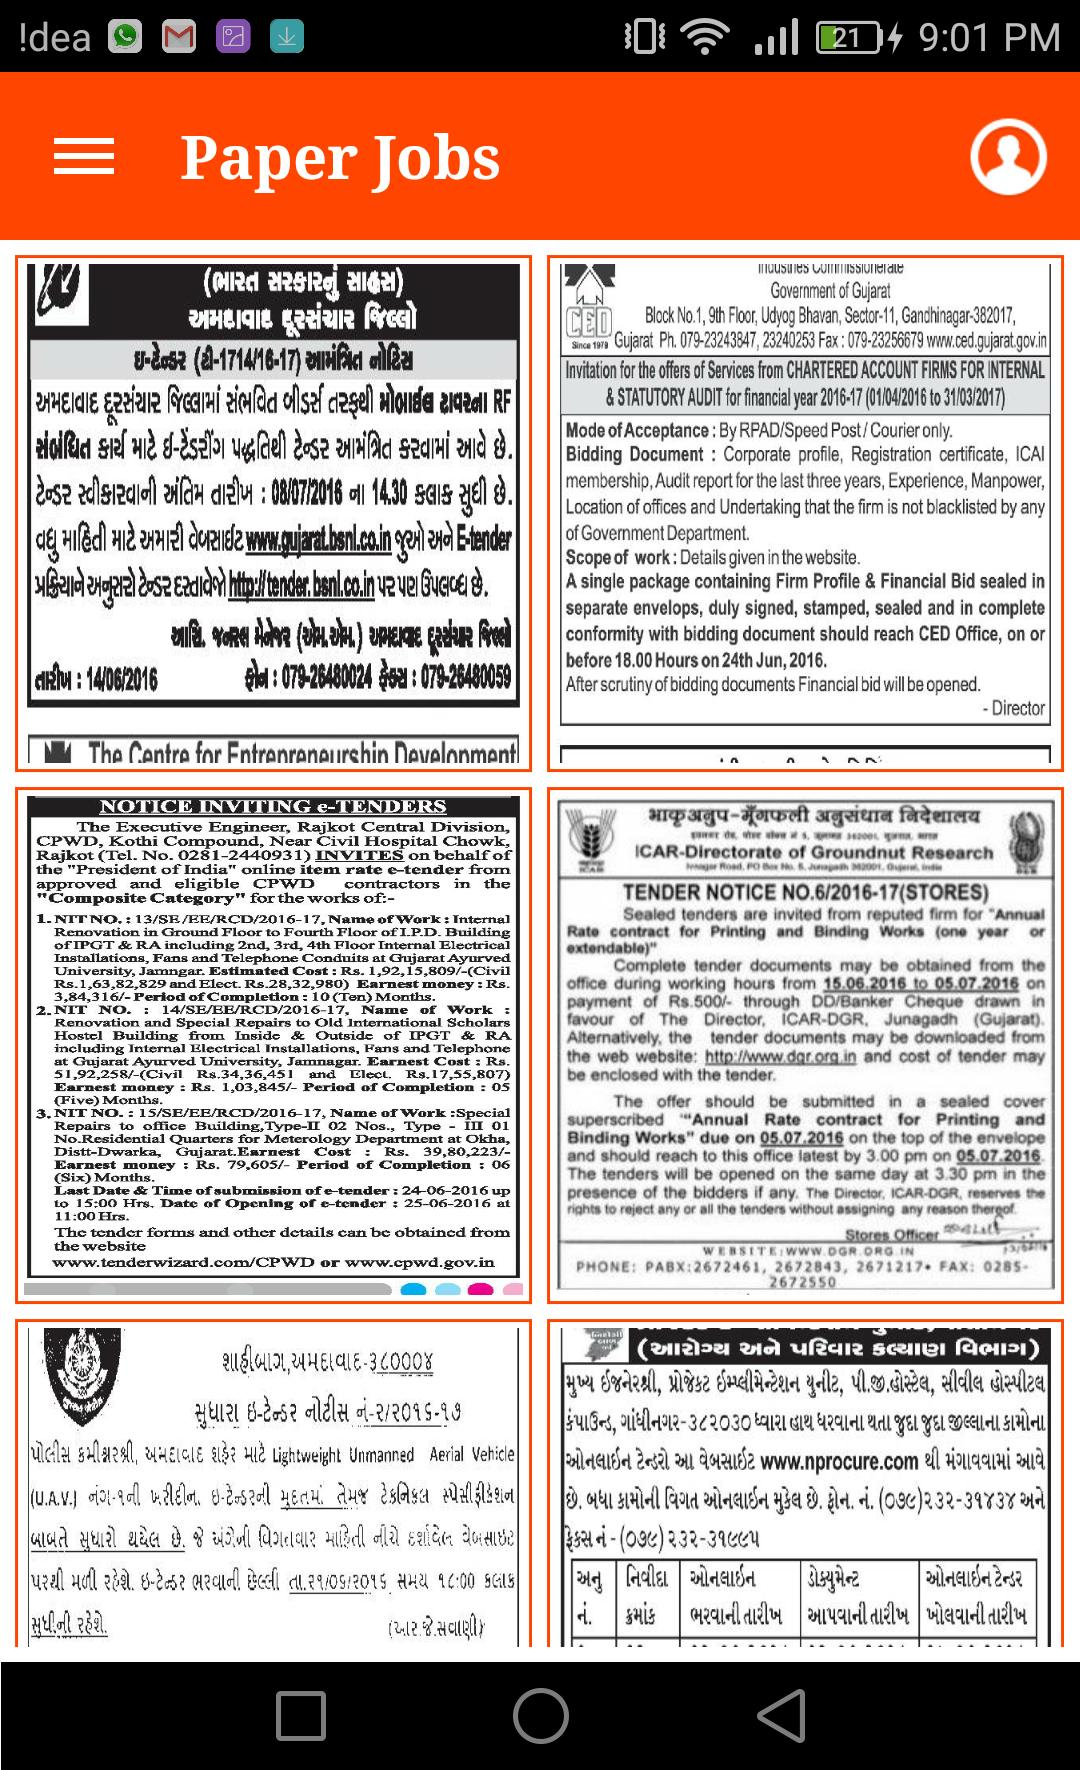 Job Ads from Newspapers for Android - APK Download